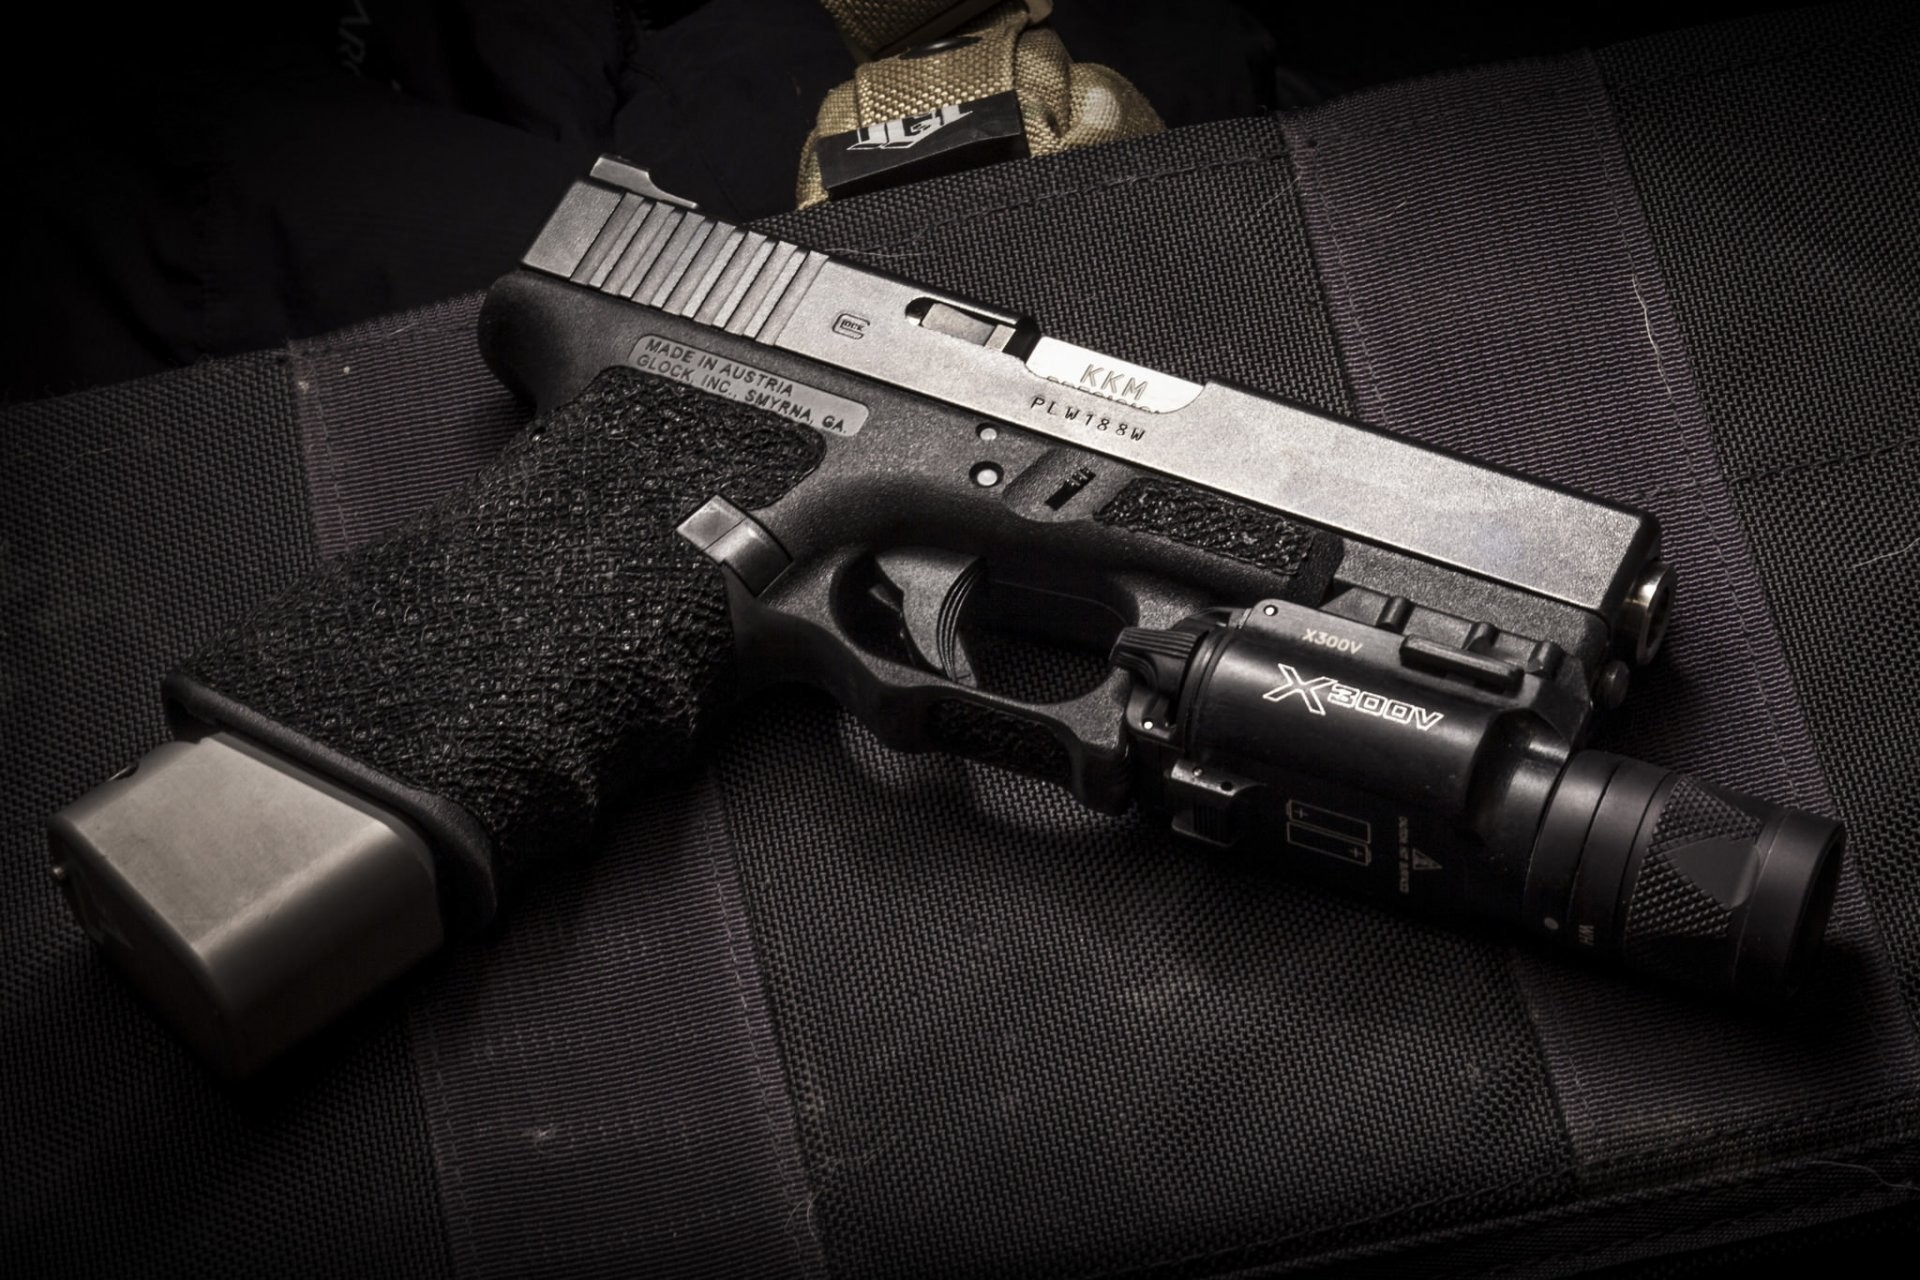 1920x1280 2048 x 1152 glock wallpapers - photo #5